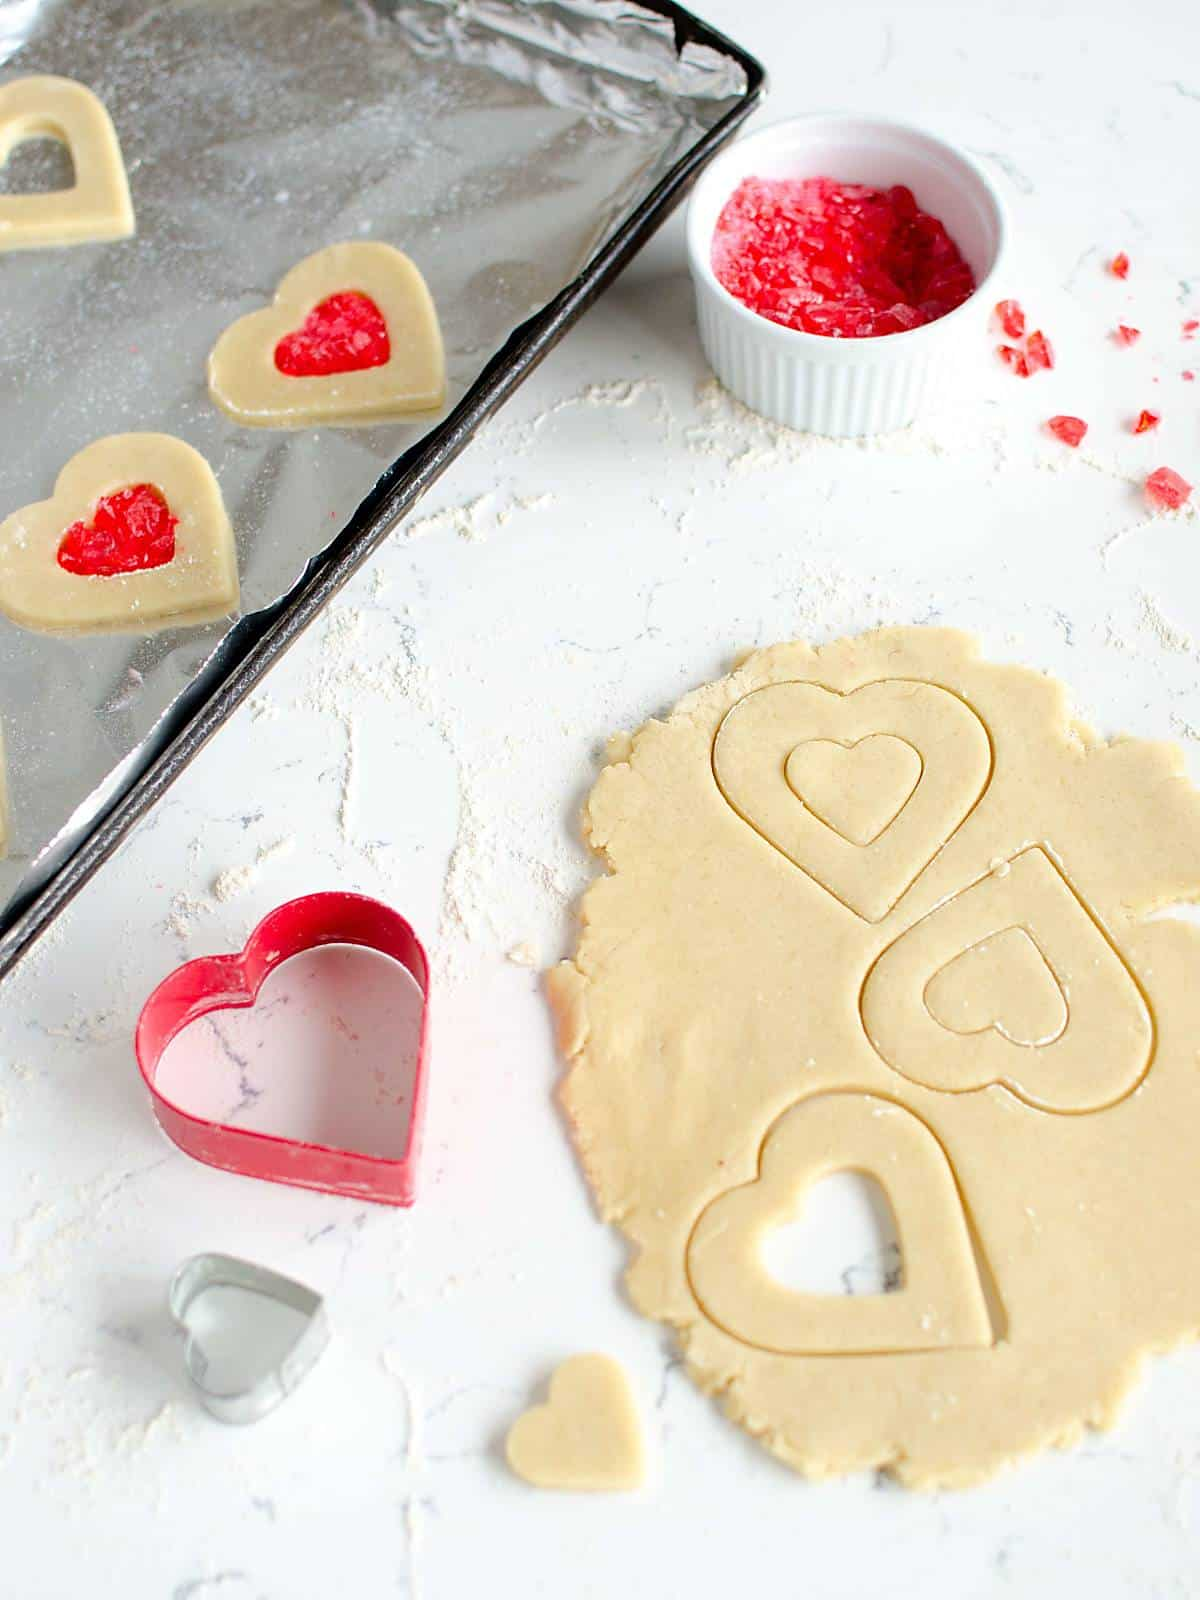 rolled dough with heart shaped cookie cut outs, cookie cutters, and crushed red candy